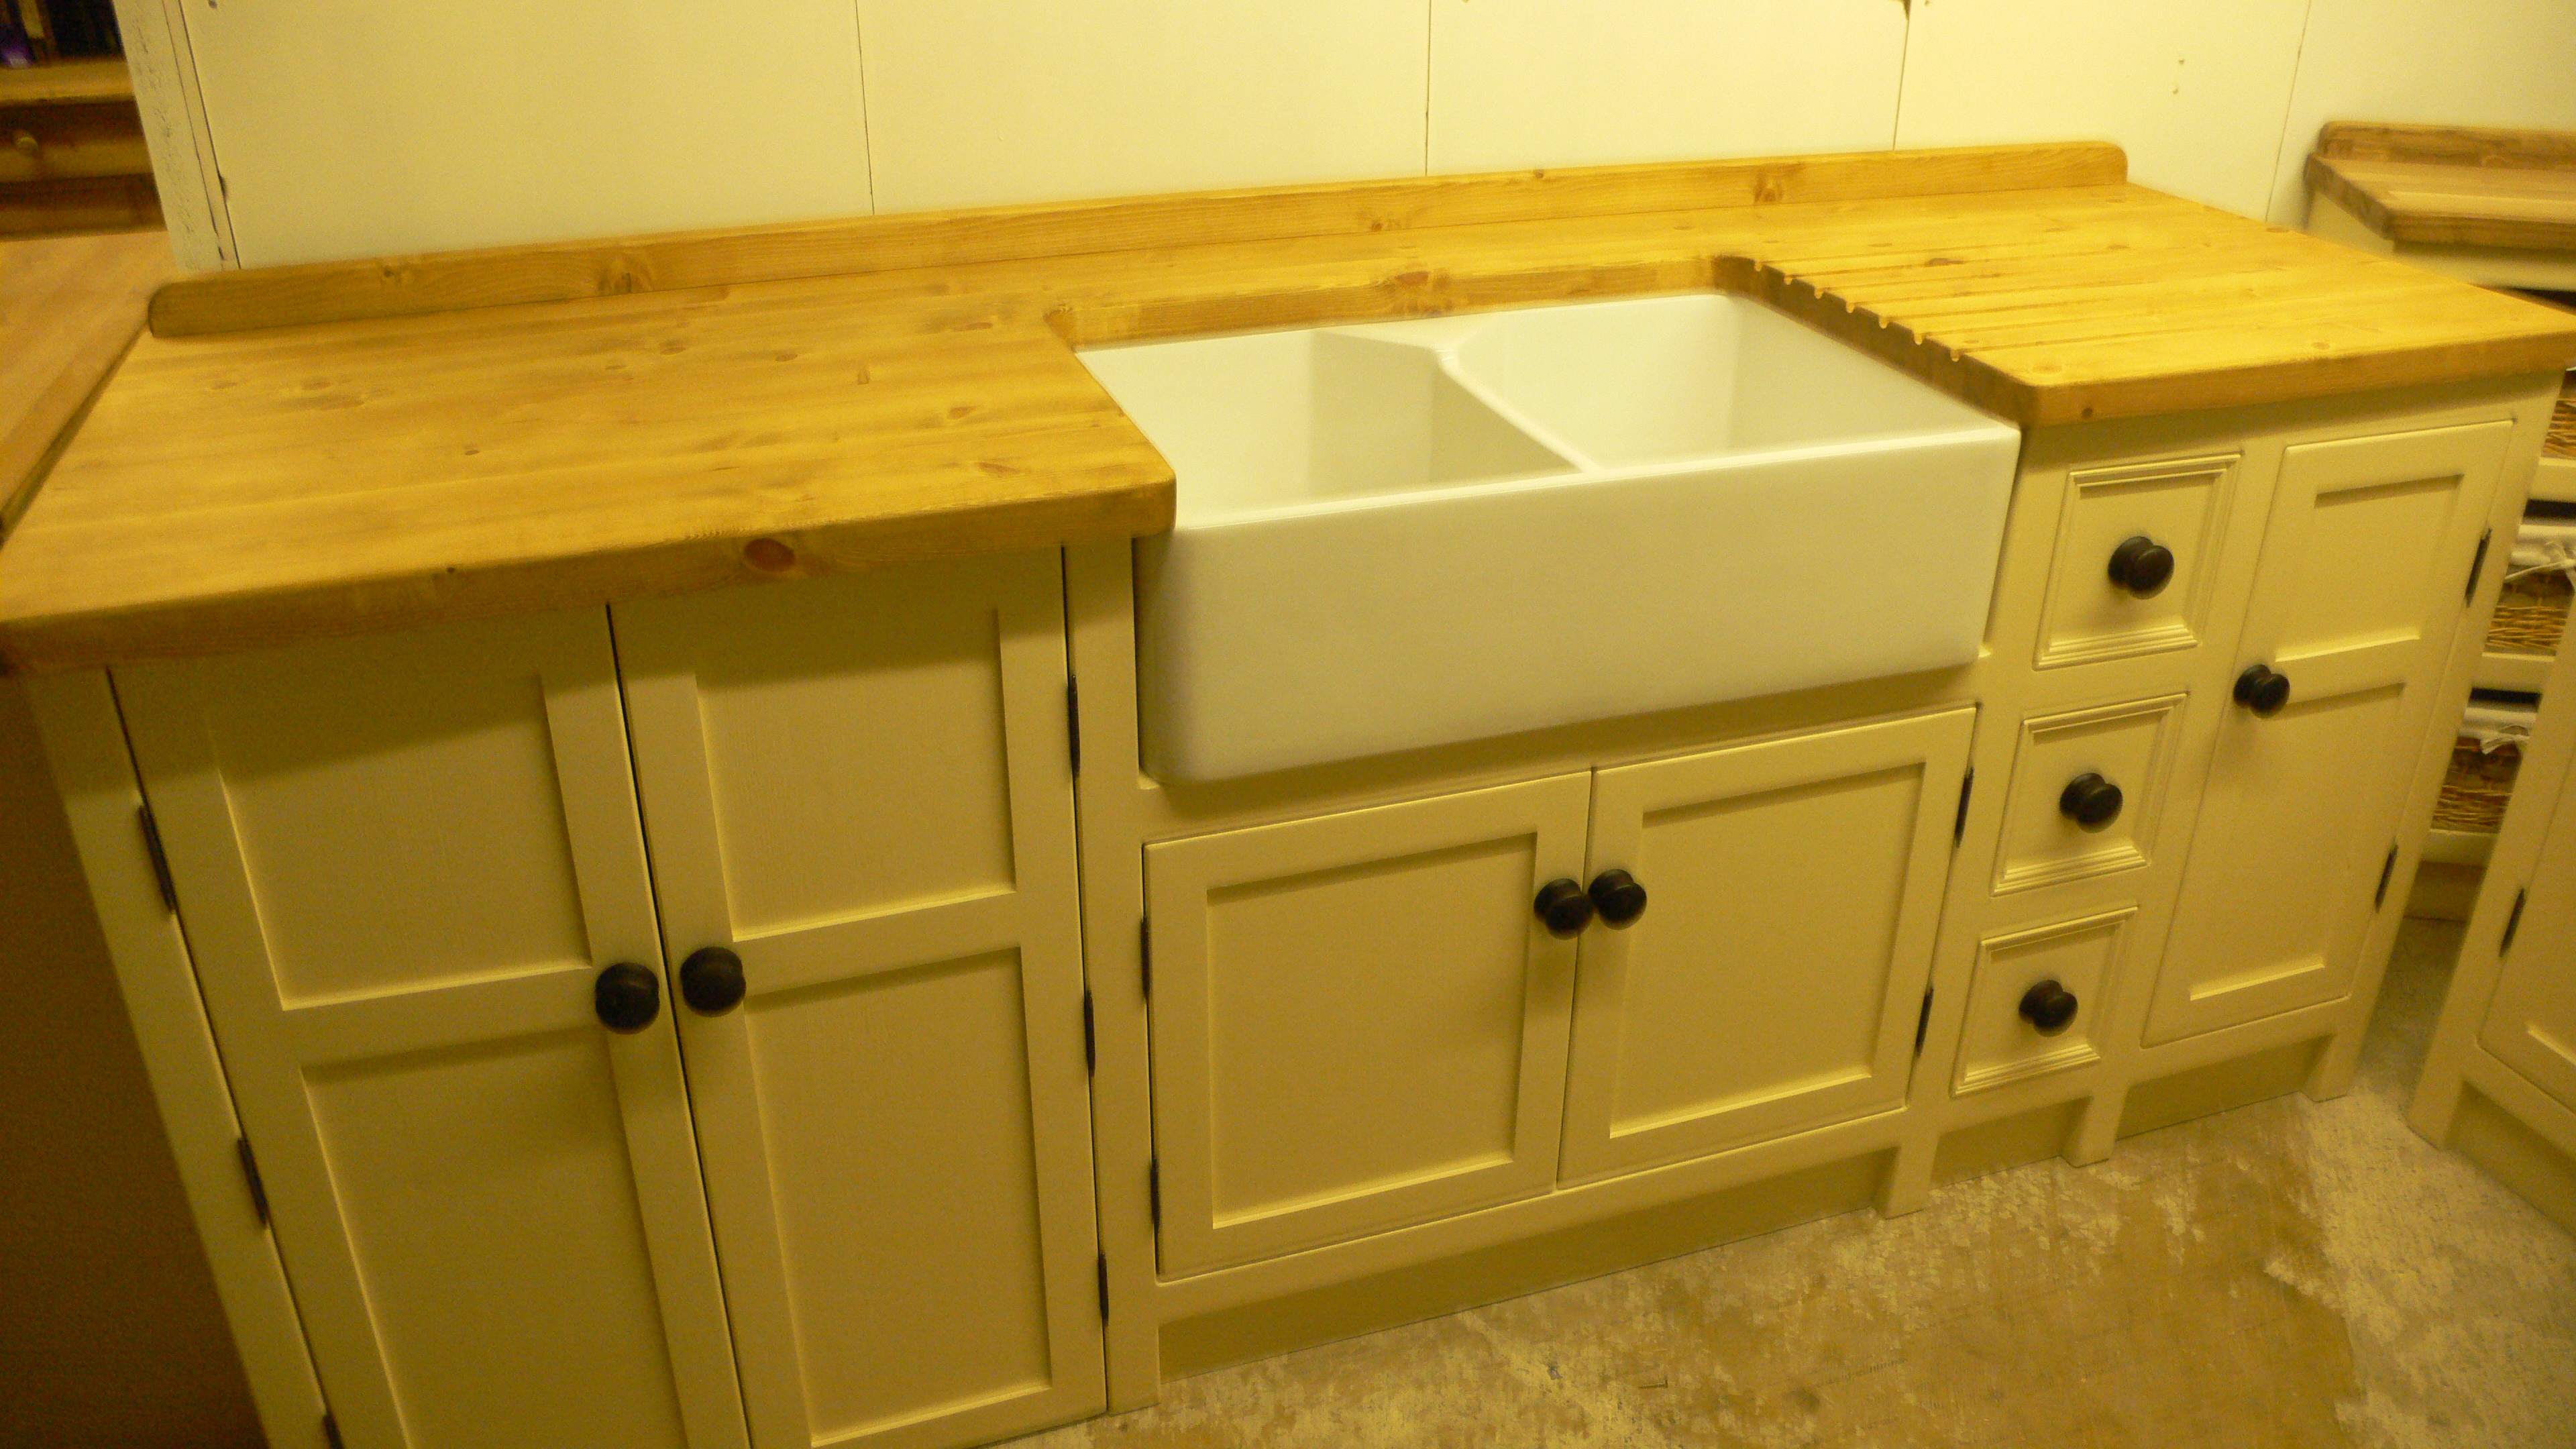 double sink unit with dishwasher cupboard - The Olive Branch Kitchens ...